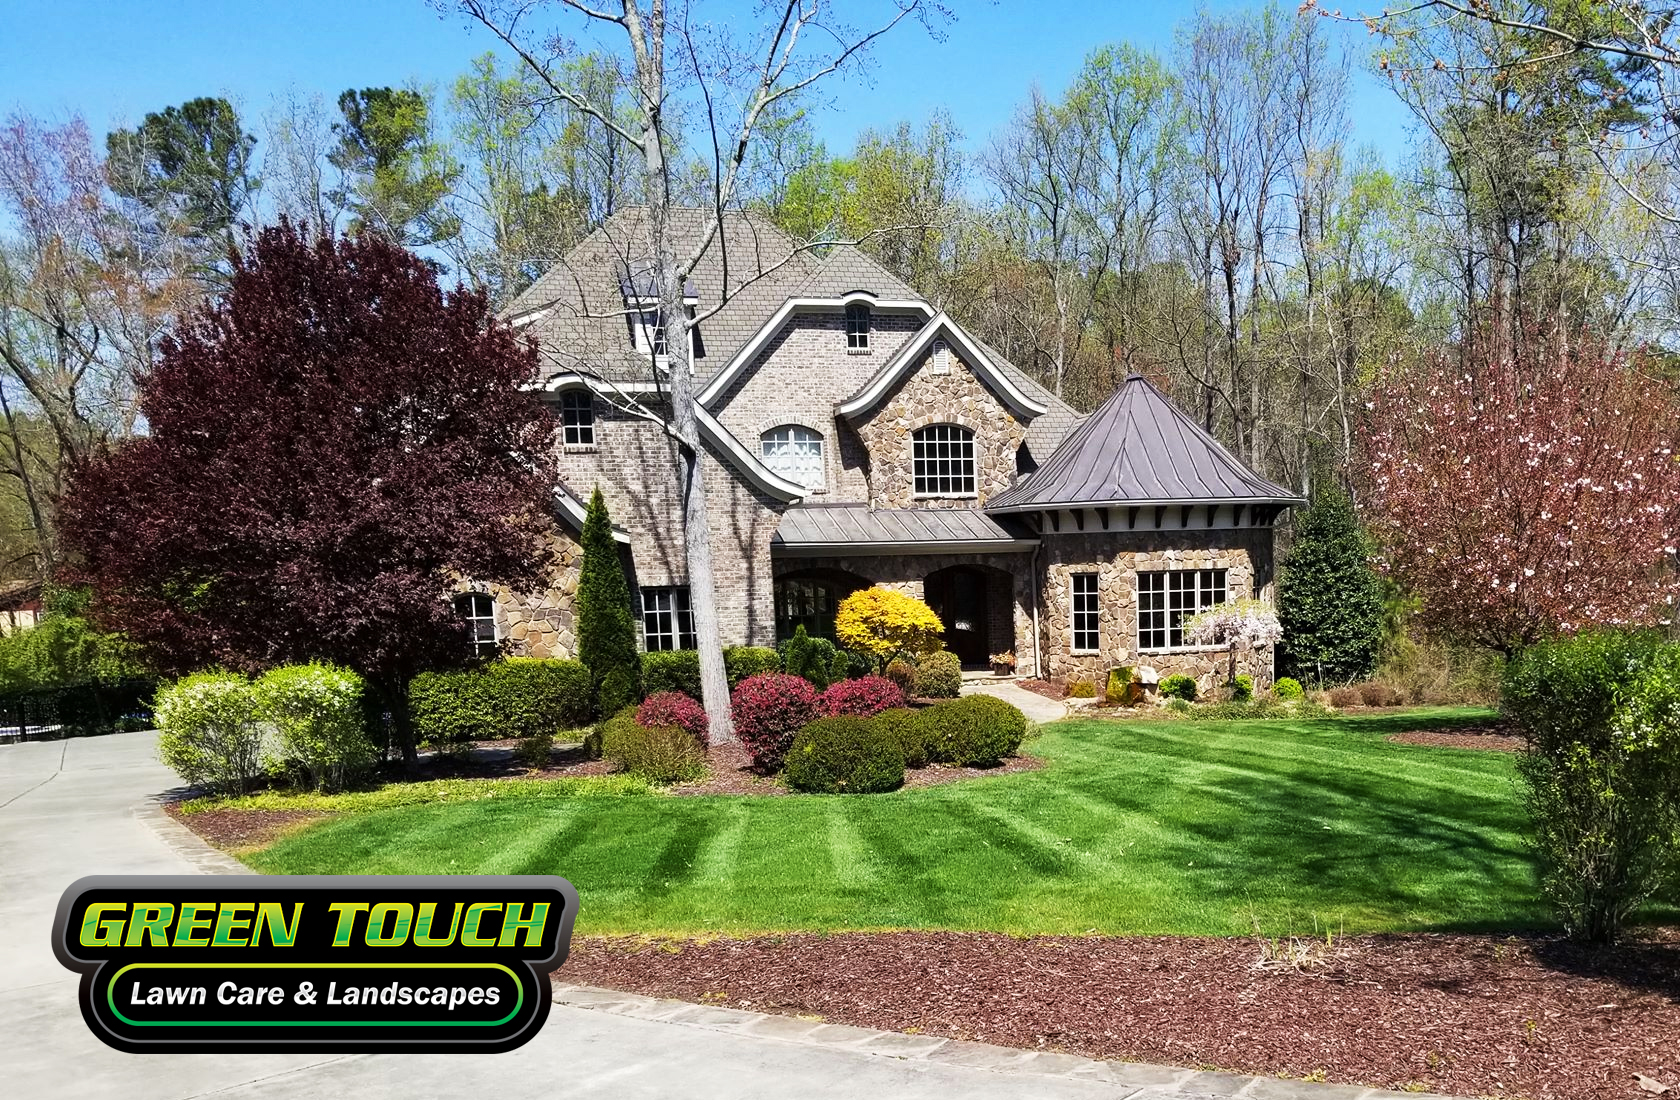 Lawn Care Landscaping Raleigh Clayton Wake Forest Smithfield North Carolina